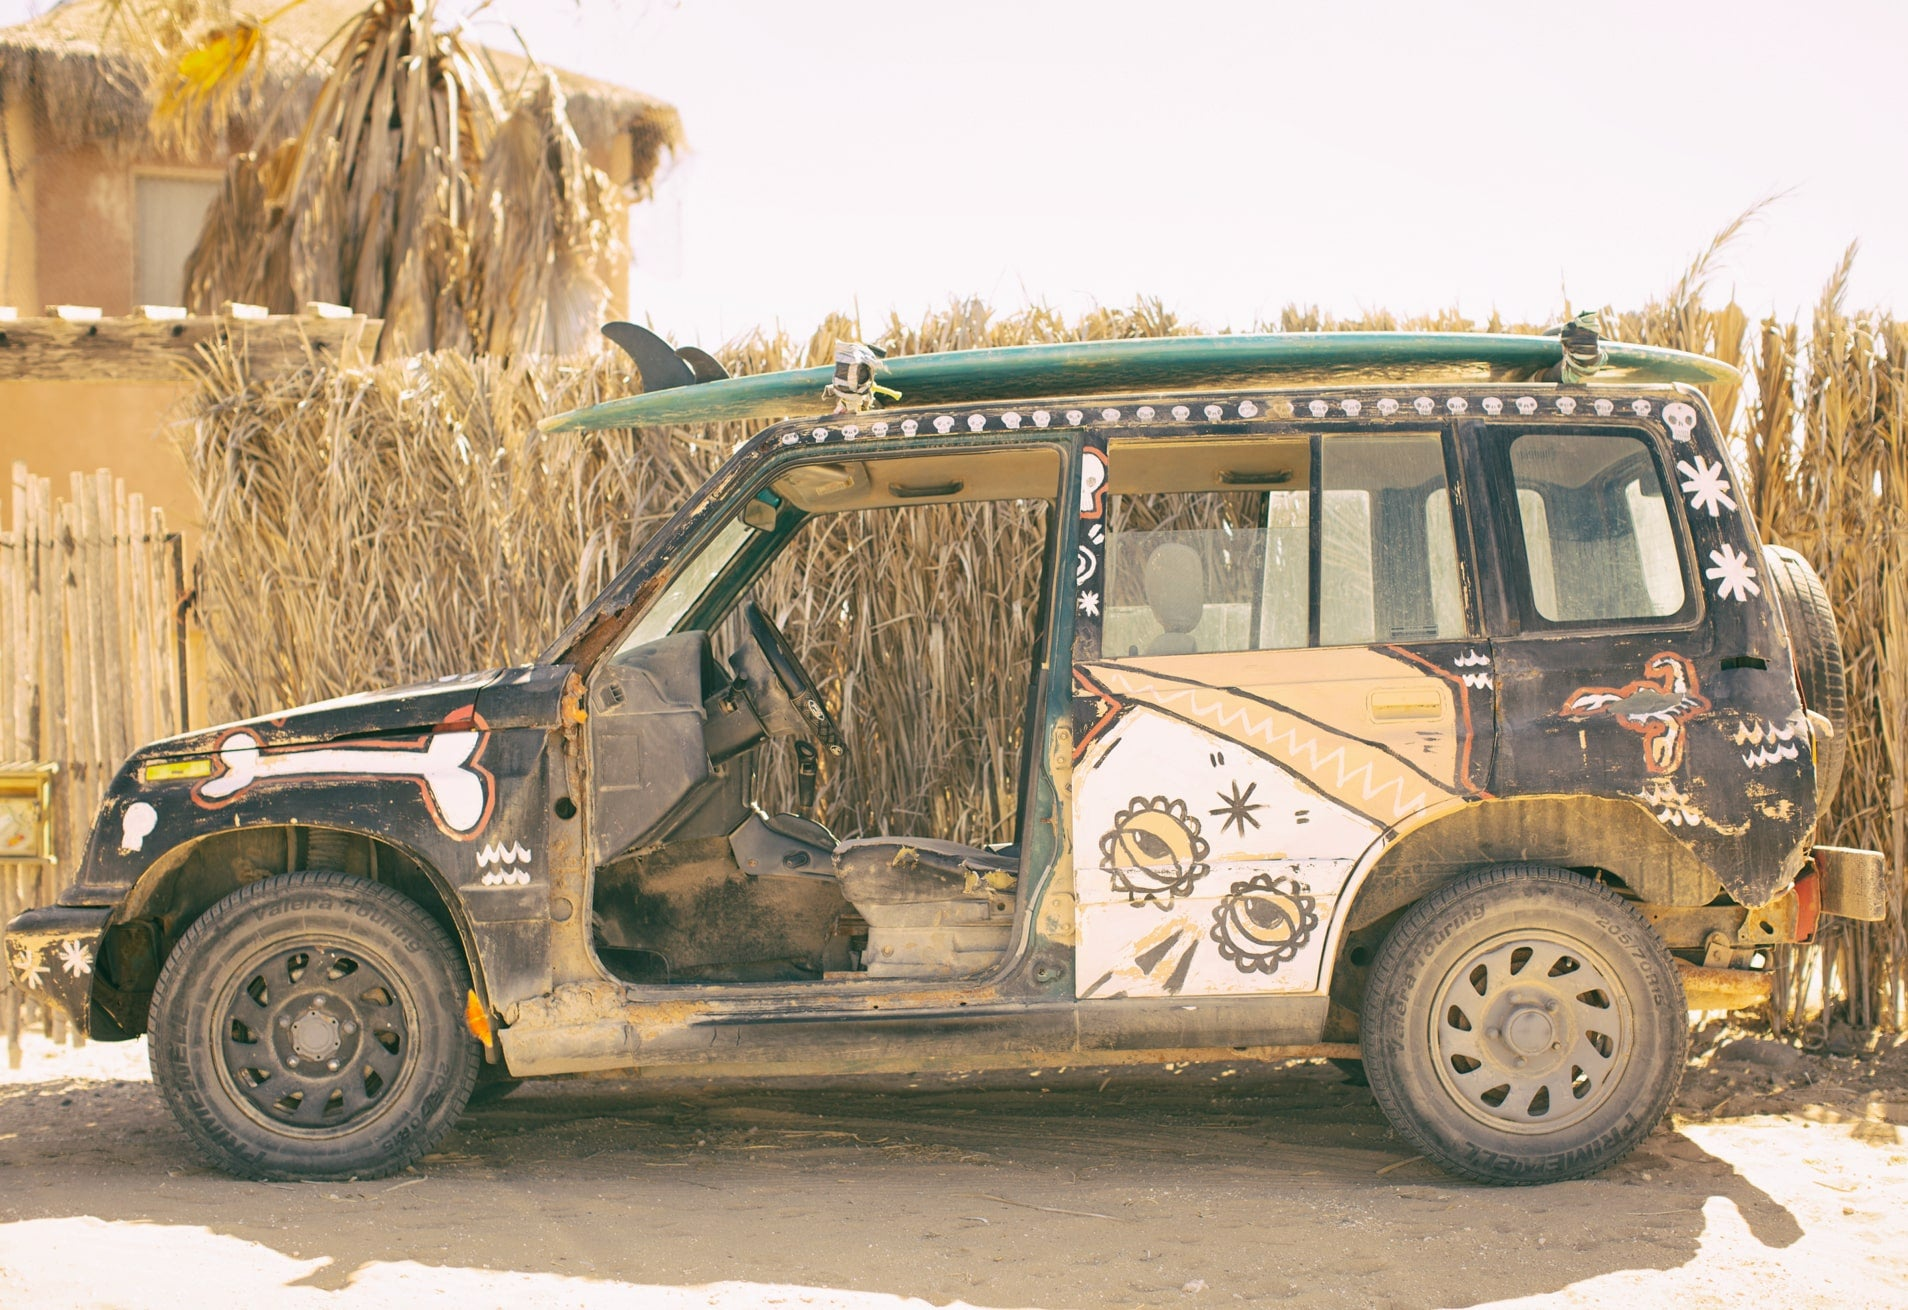 old graffiti painted vehicle with surf board